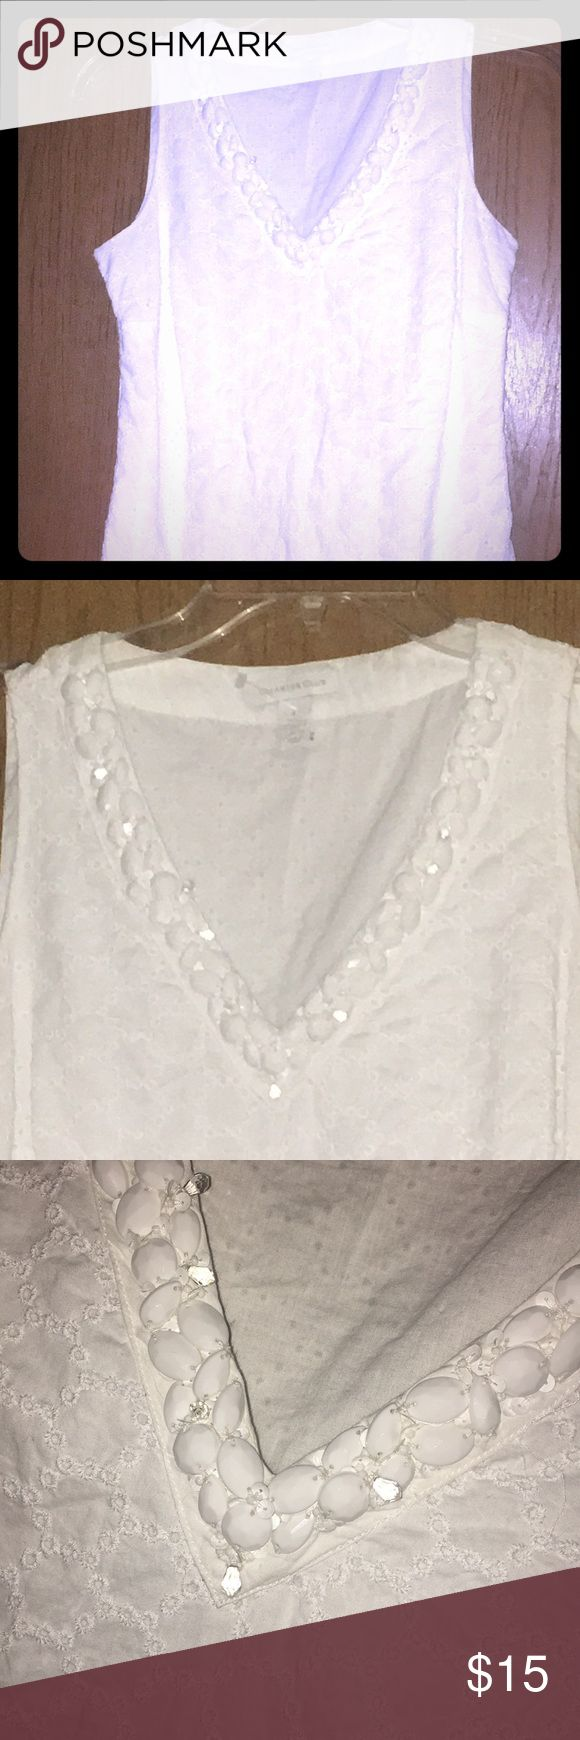 Darling summer top!! Very darling, white, beaded V-neck, light cotton eyelet summer top. Has a lining so it's not see through. This top is a little longer, definitely drops past the waist, mid butt. Lots of life left!! Charter Club Tops Tunics